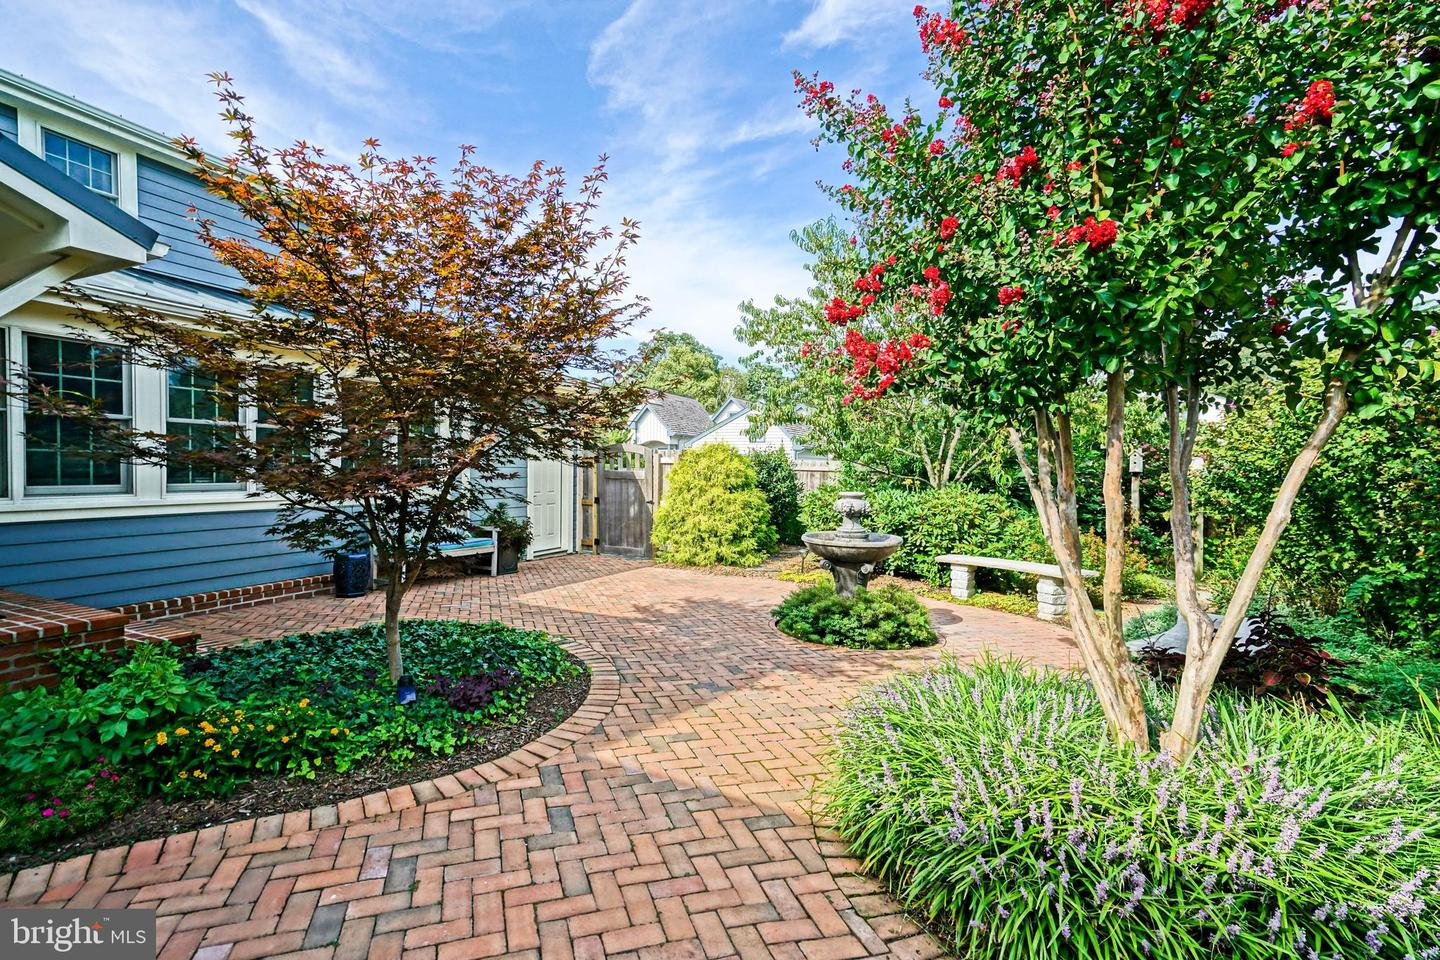 DESU147556-302019820356-2019-11-23-15-34-58 36 Shipcarpenter Sq | Lewes, DE Real Estate For Sale | MLS# Desu147556  - Lee Ann Group